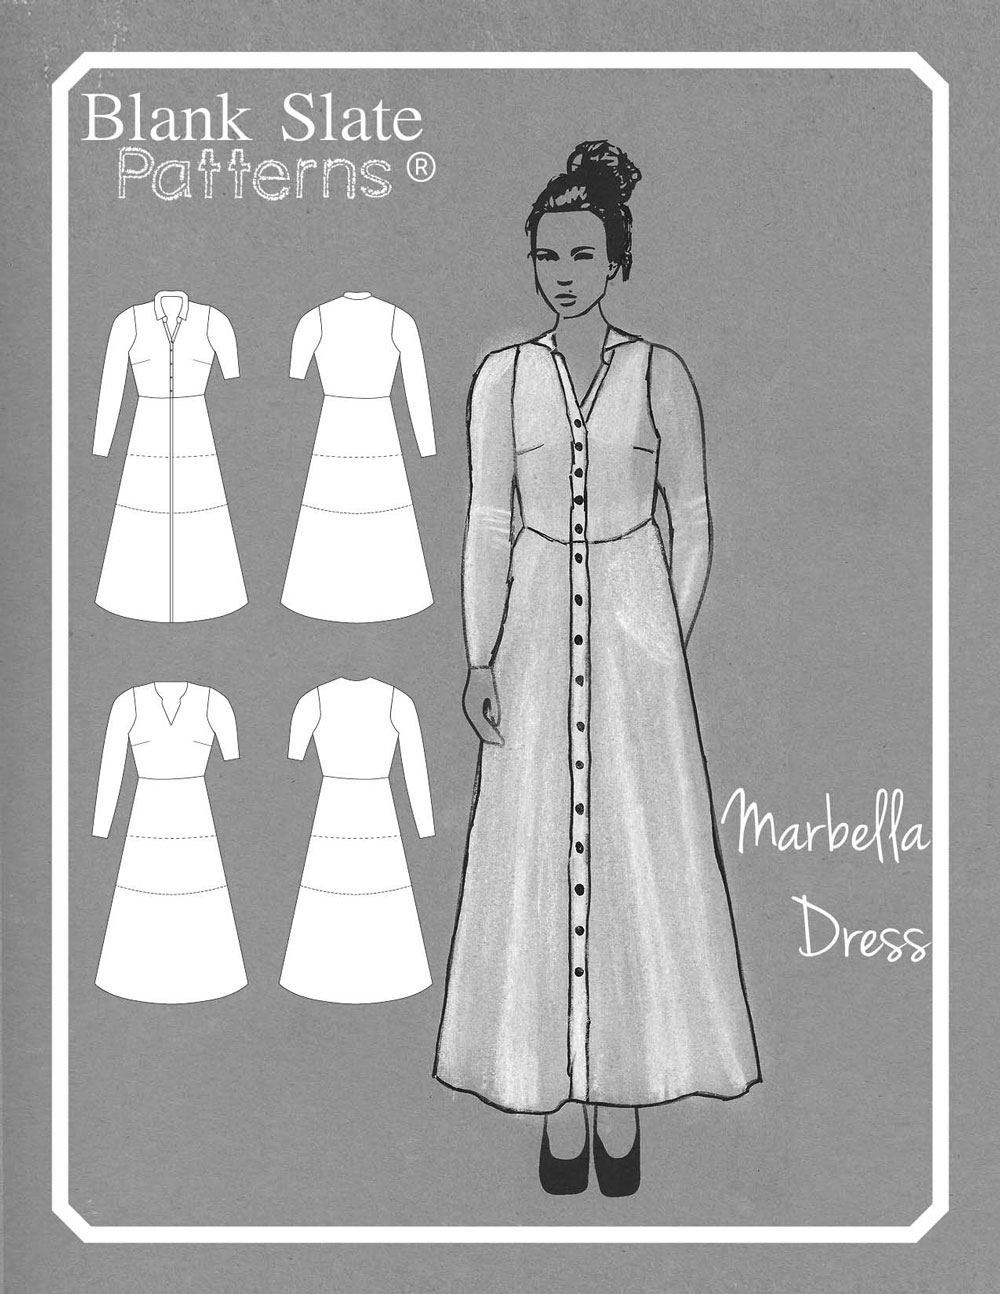 Fabric substitutions can i sew a pattern for knit with woven line drawing marbella dress by blank slate patterns knit dress sewing pattern with 2 bankloansurffo Images